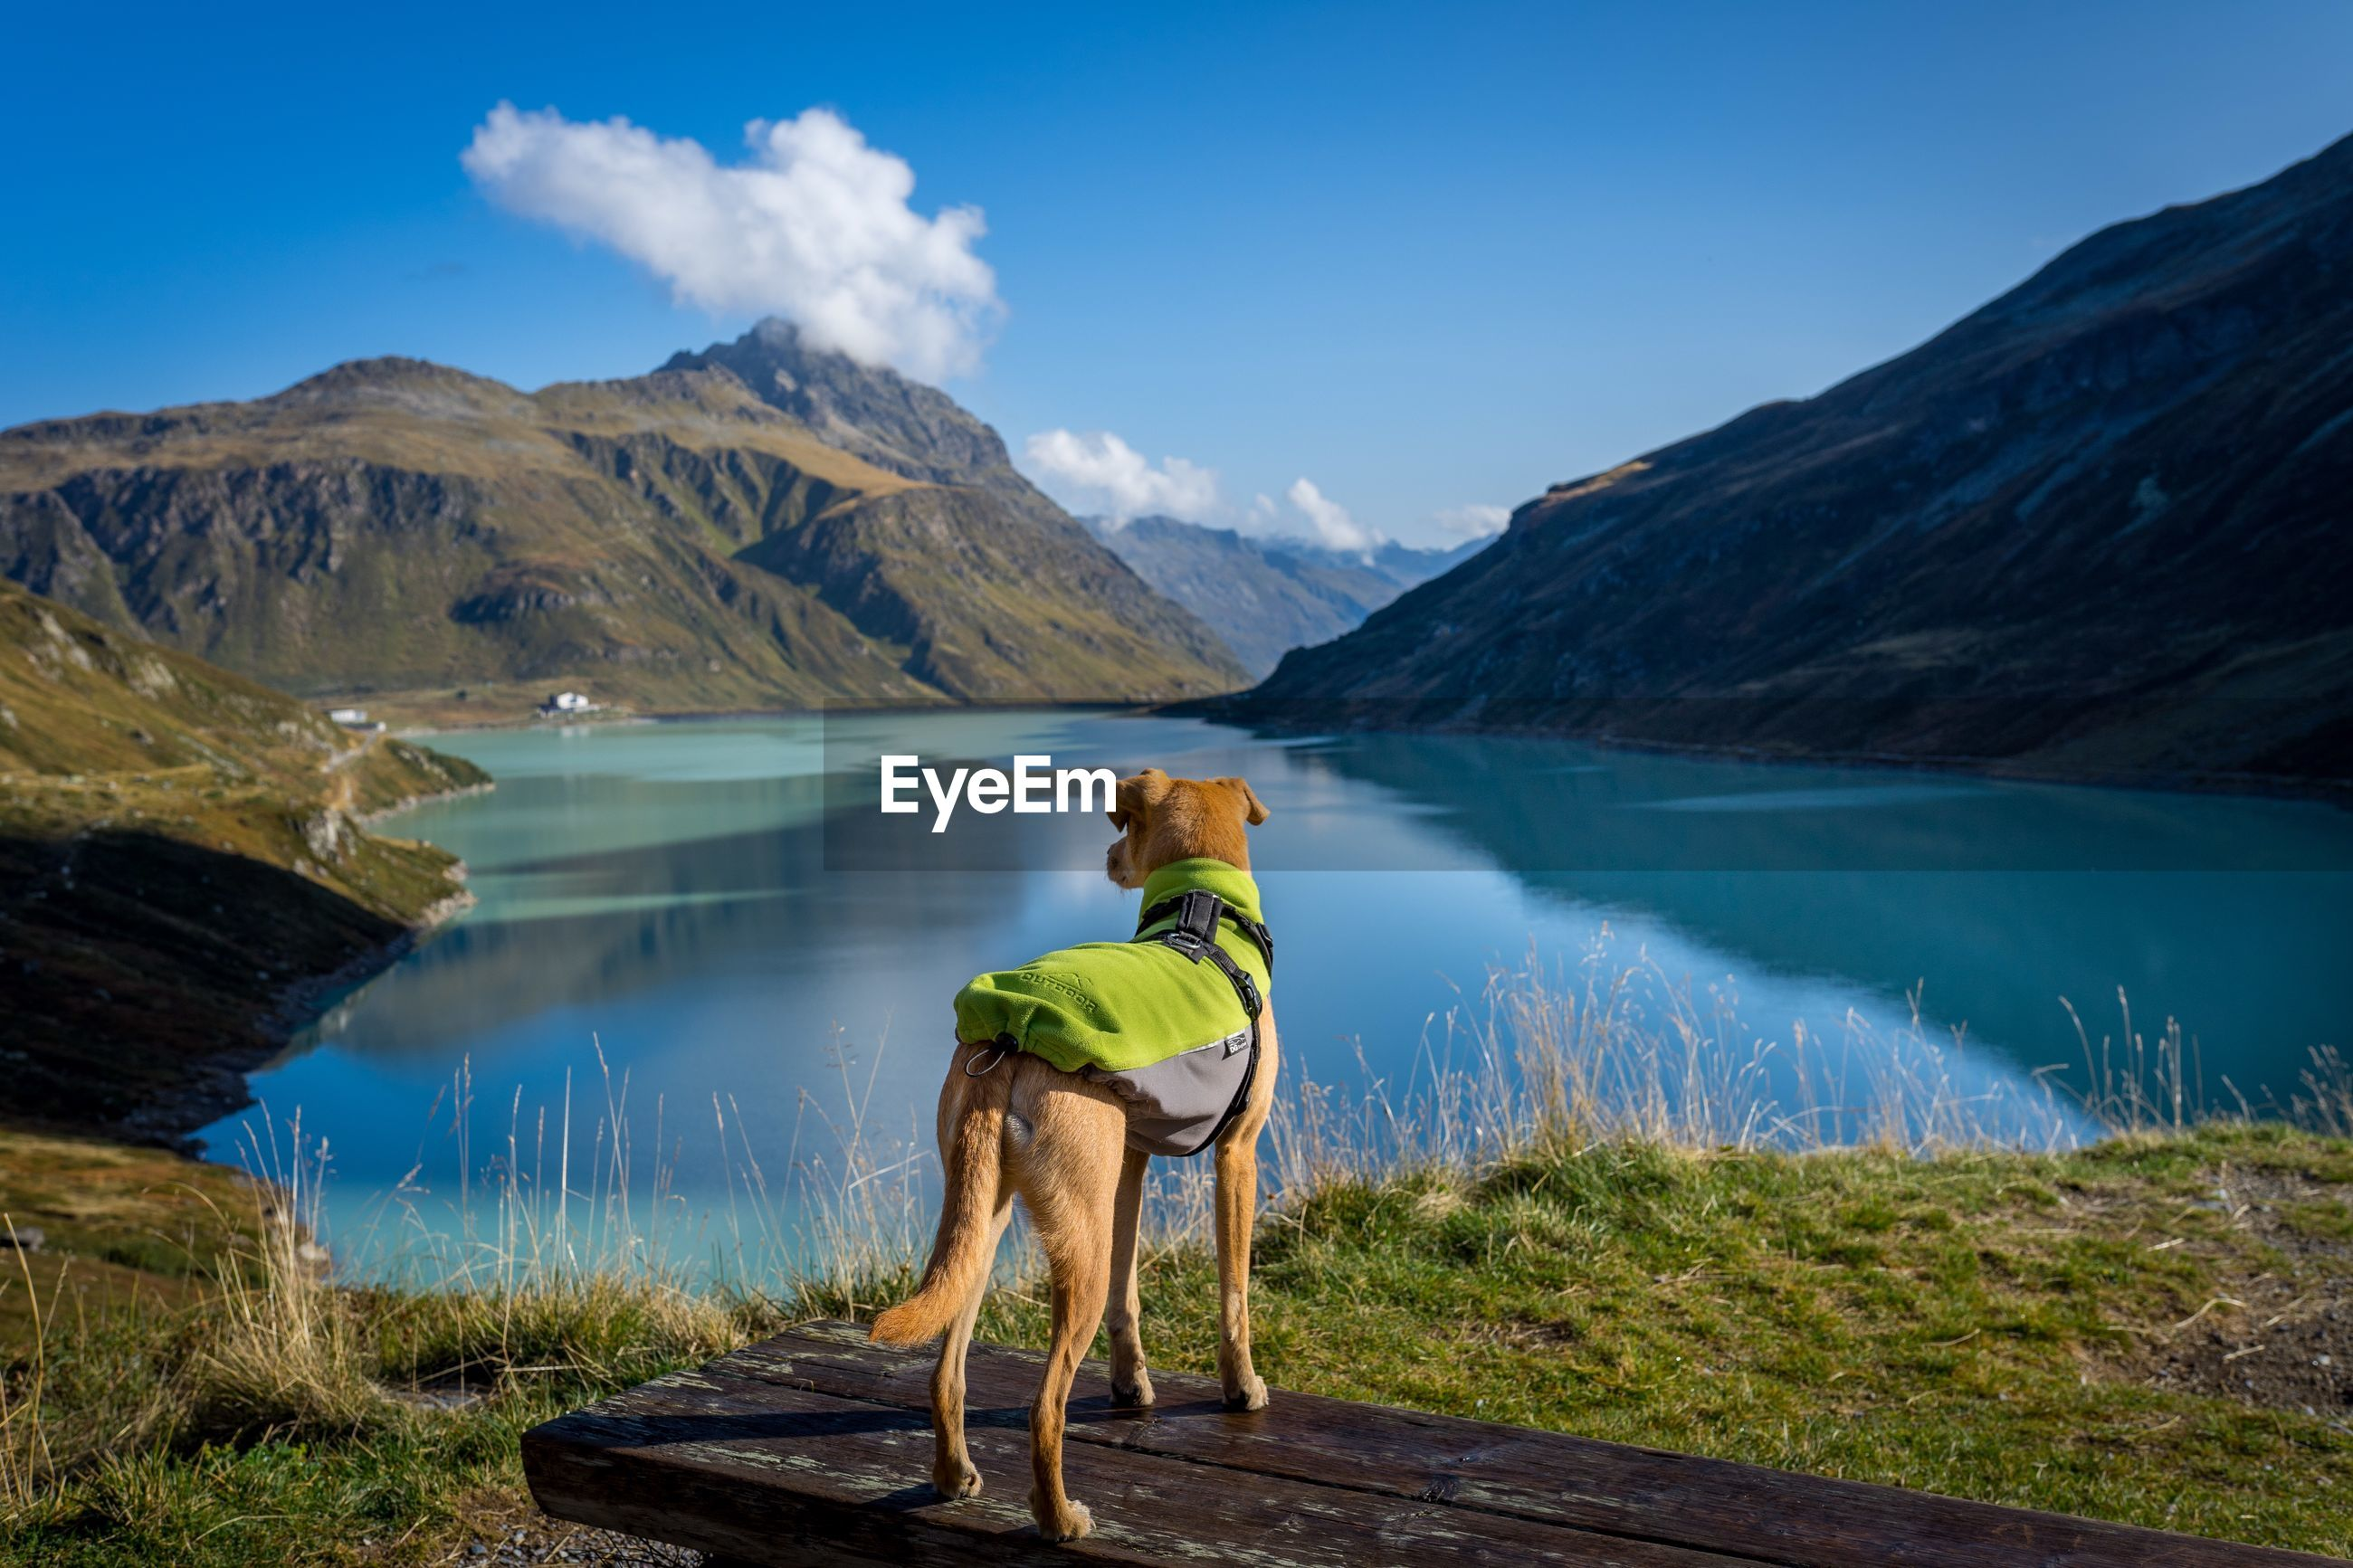 Dog standing by lake against mountains and sky